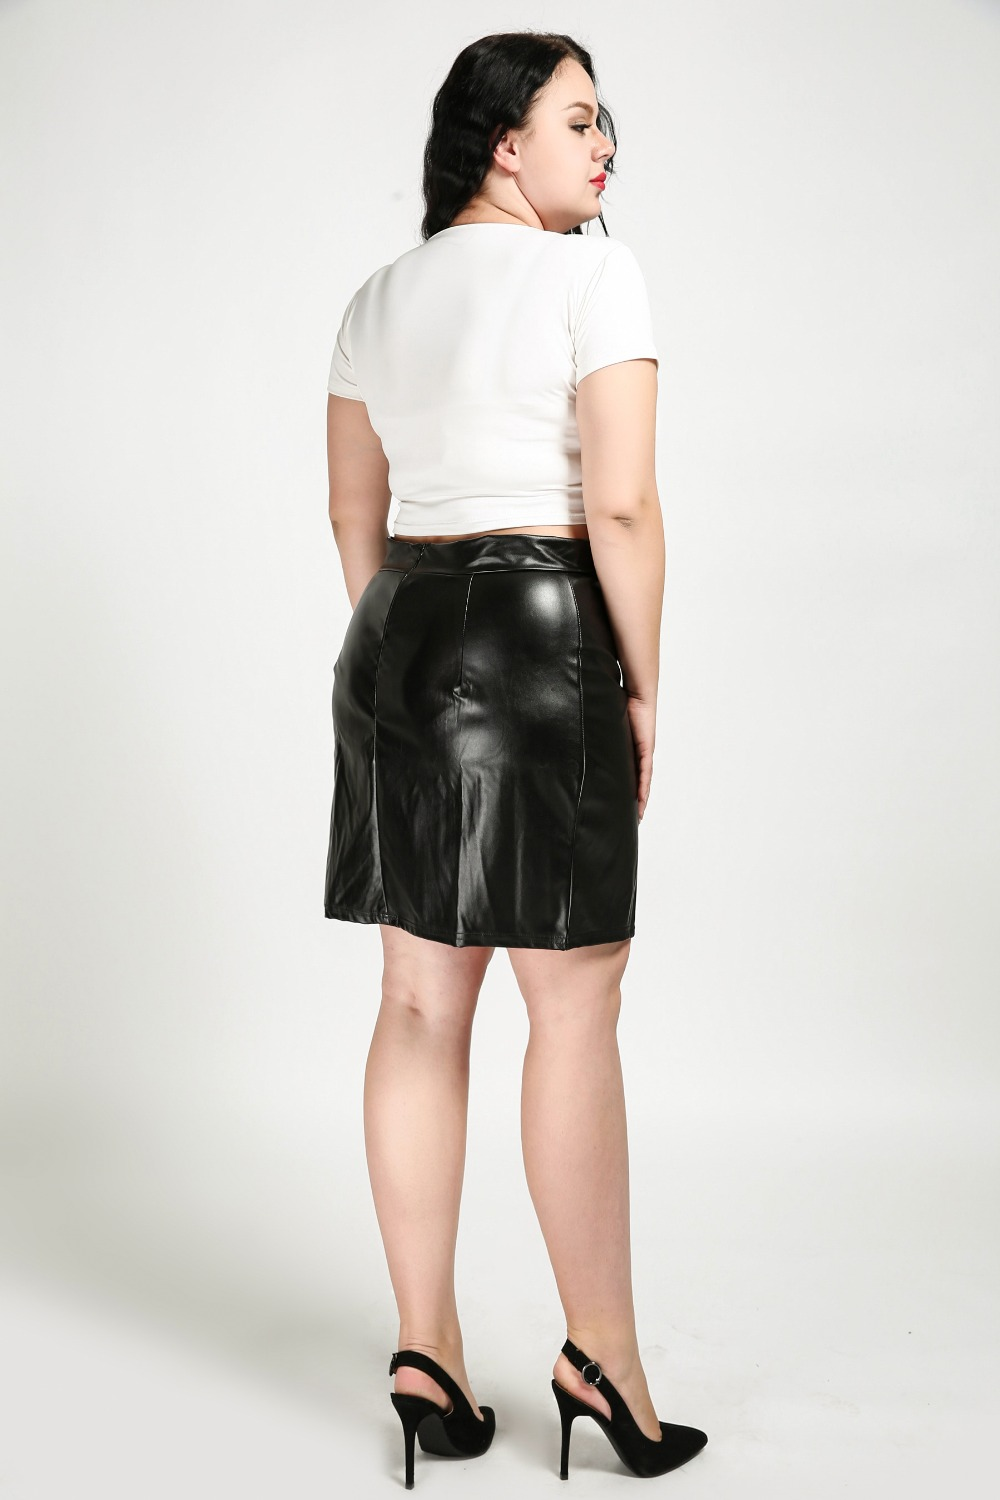 women's sexy plus size faux leather skirt black knee length cocktail